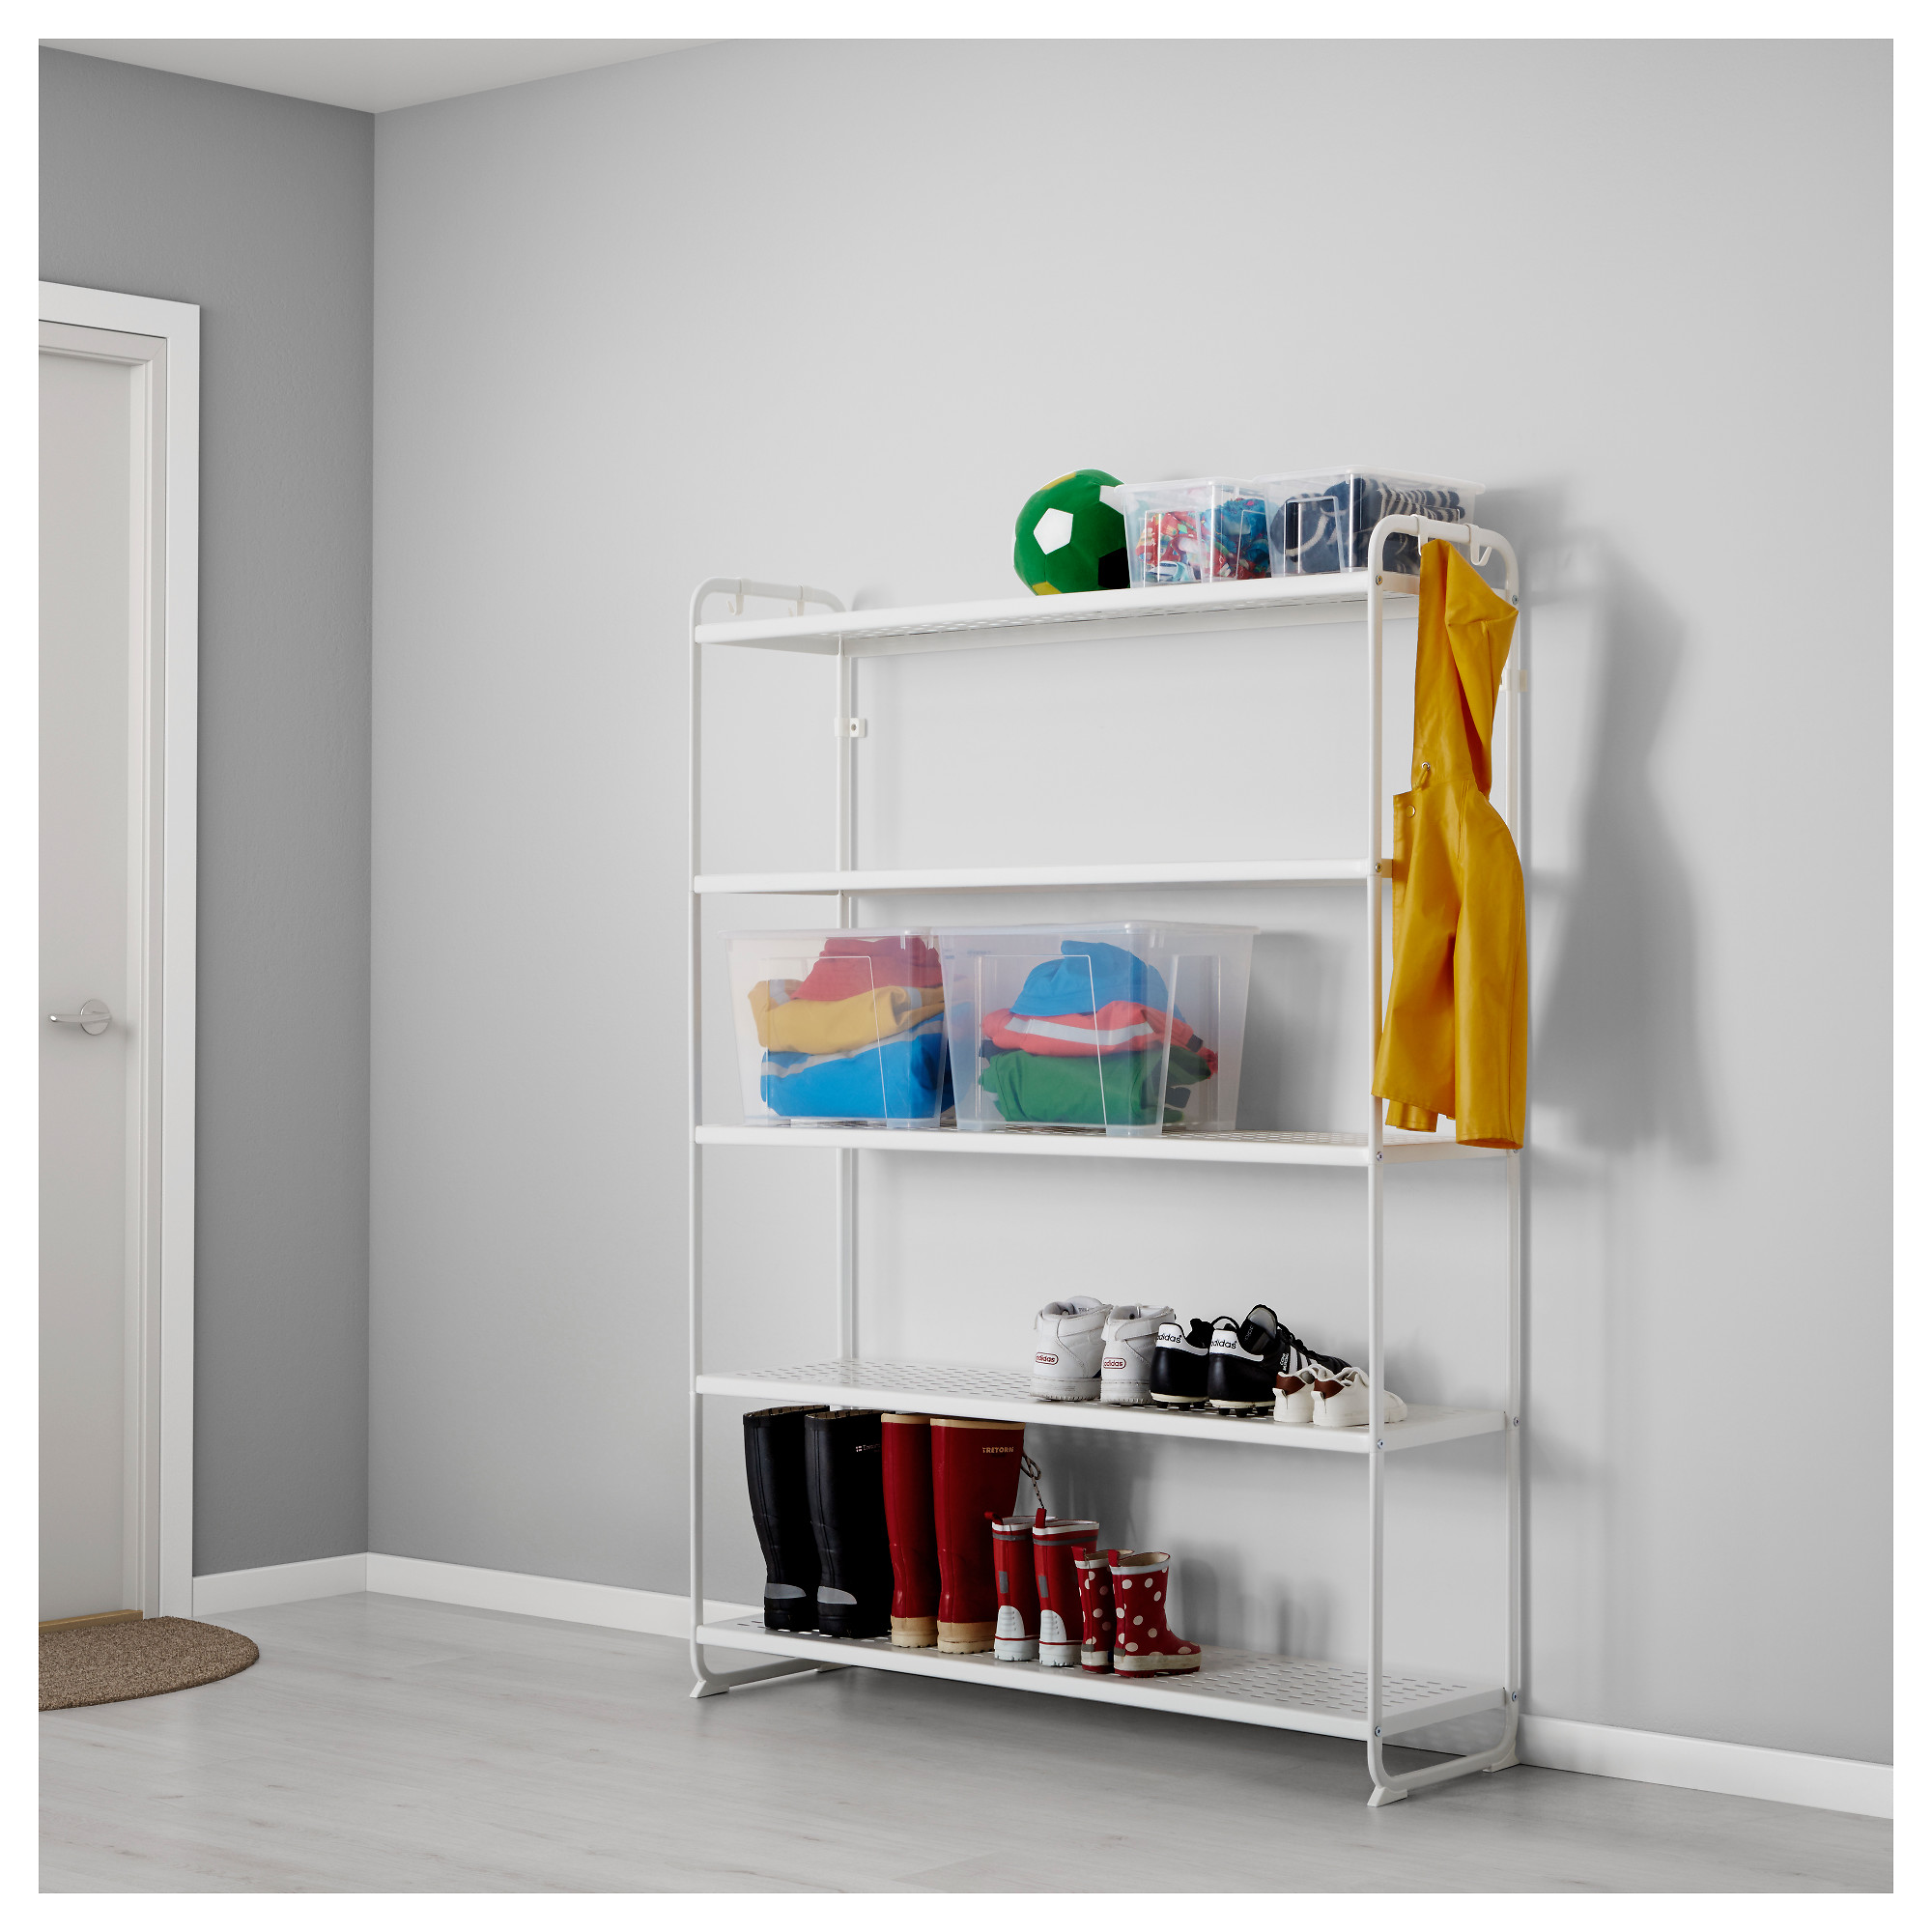 Shelves shelving units ikea mulig shelf unit white width 47 14 depth 13 3 amipublicfo Image collections